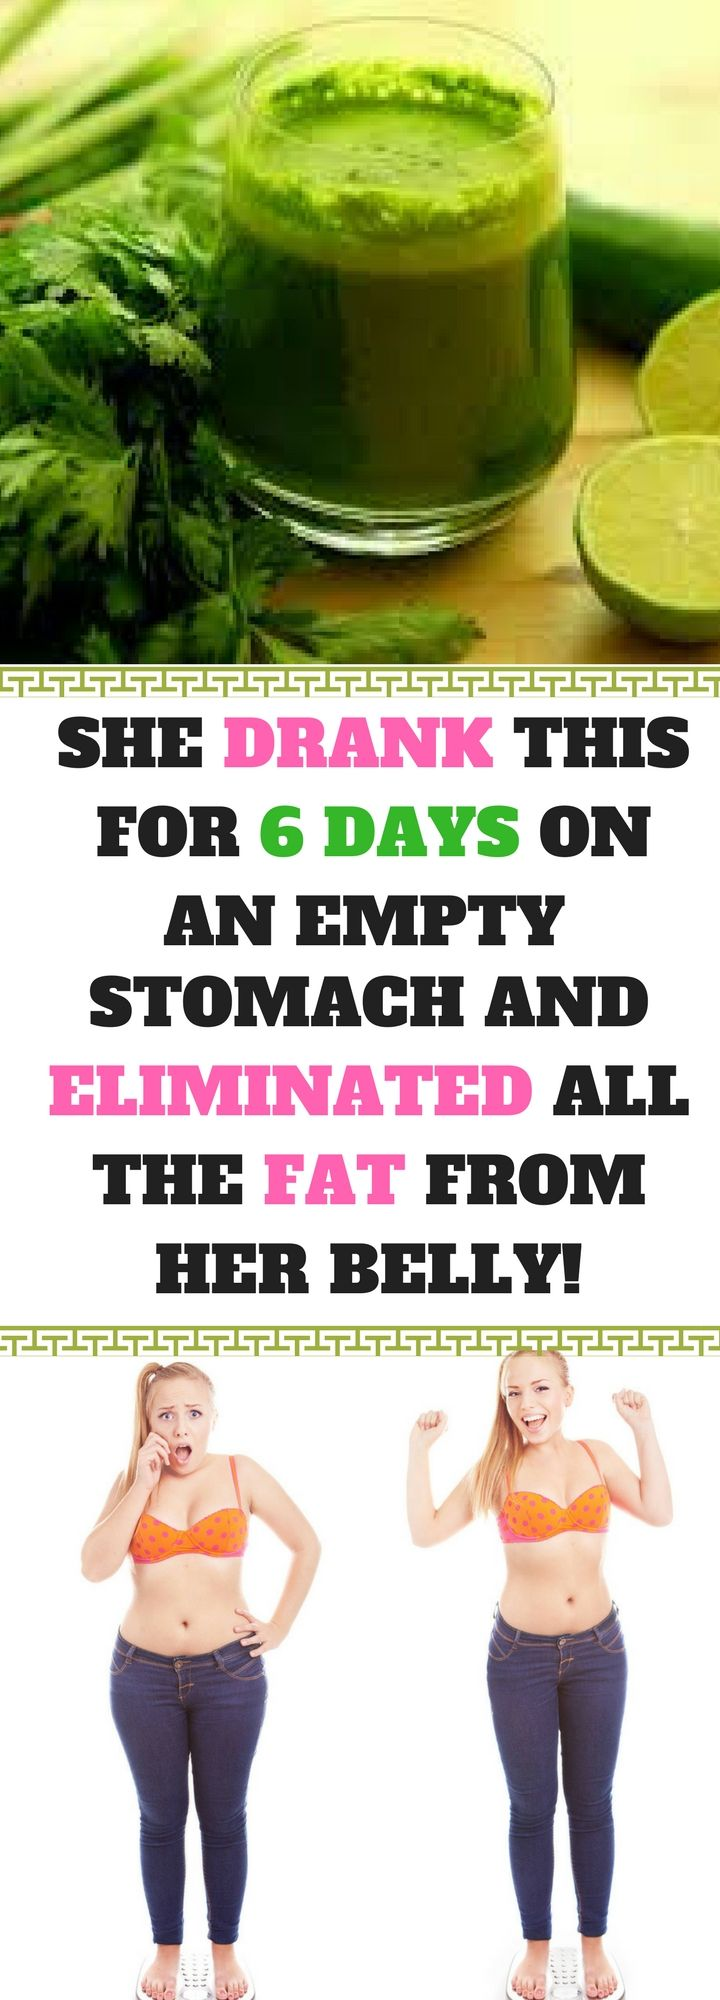 How to reduce belly fat within 7 days